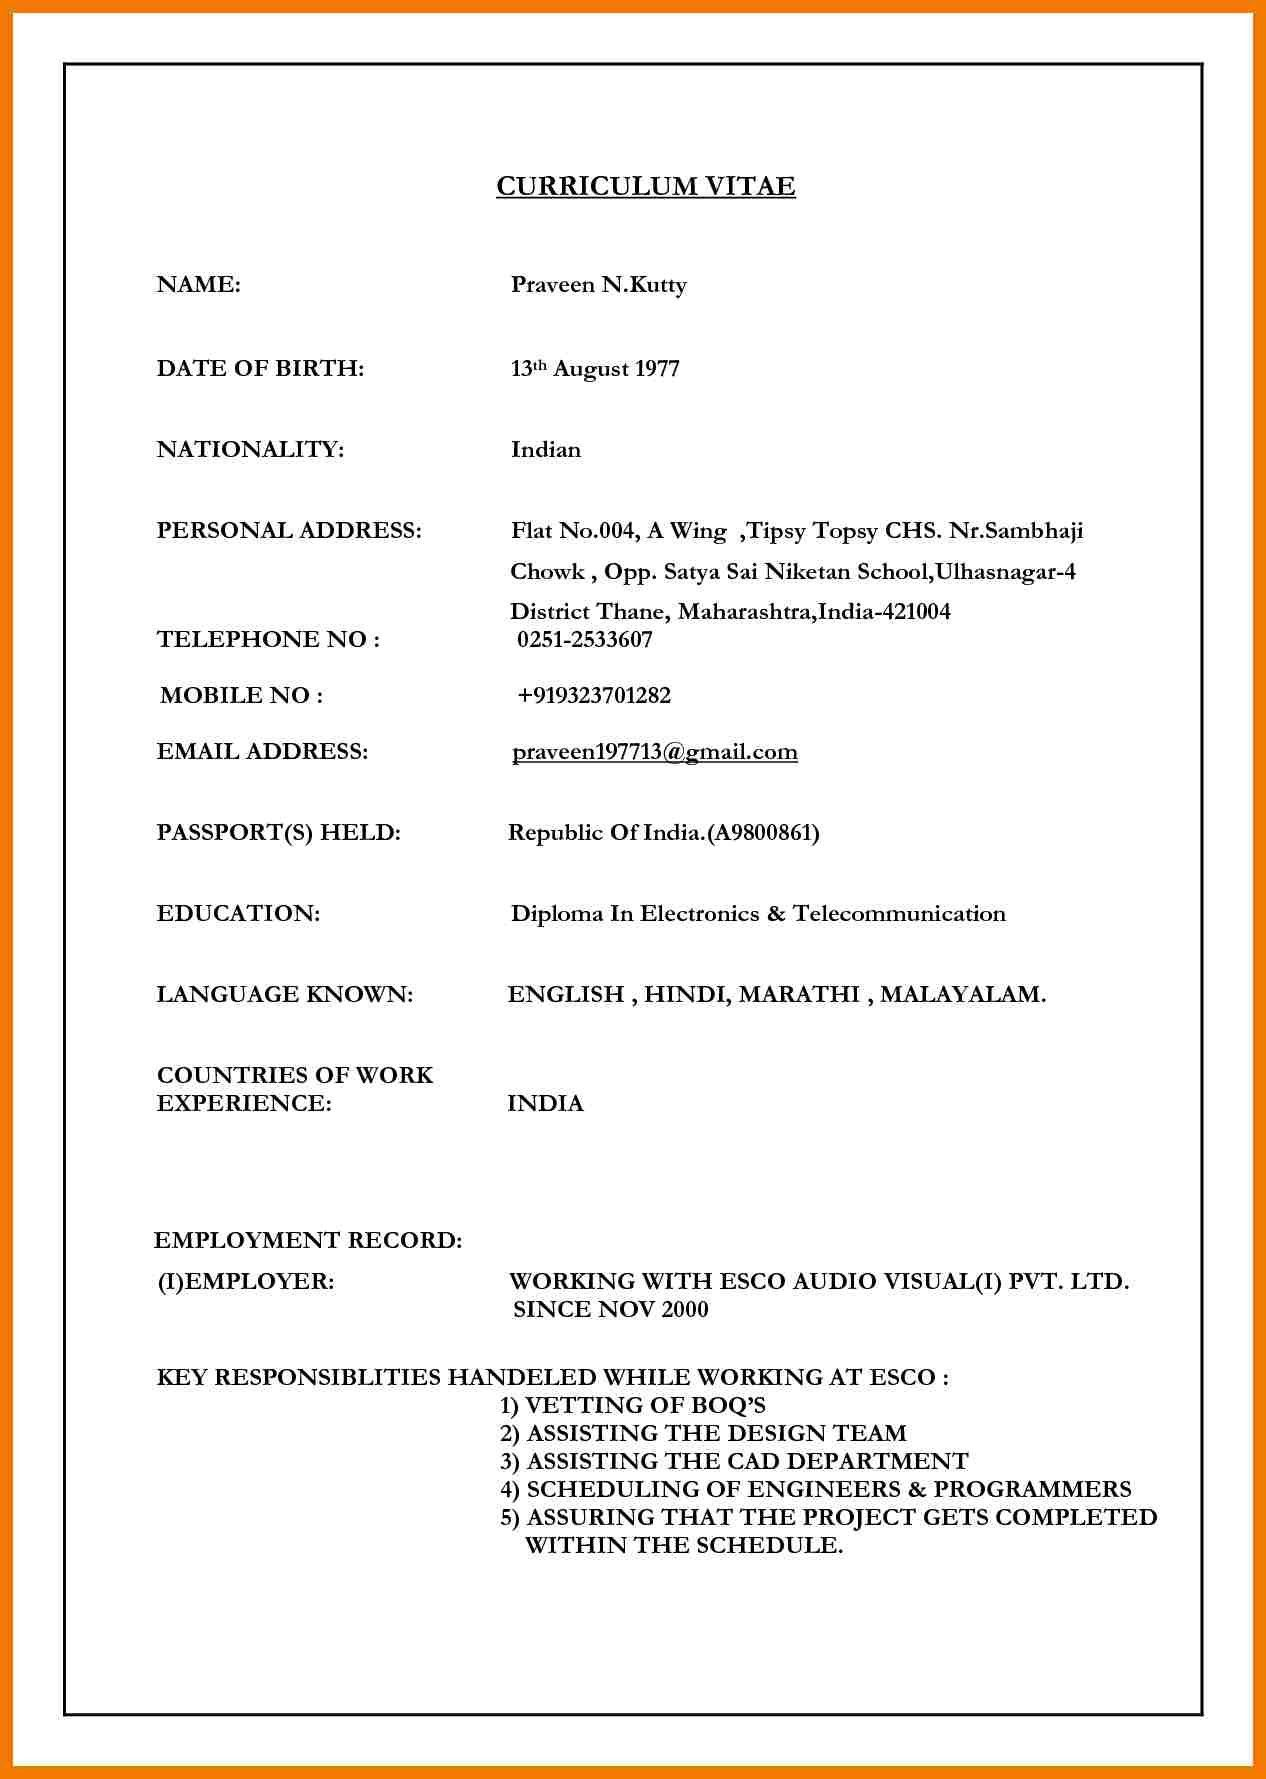 marriage certificate form download gujarat fresh biodata